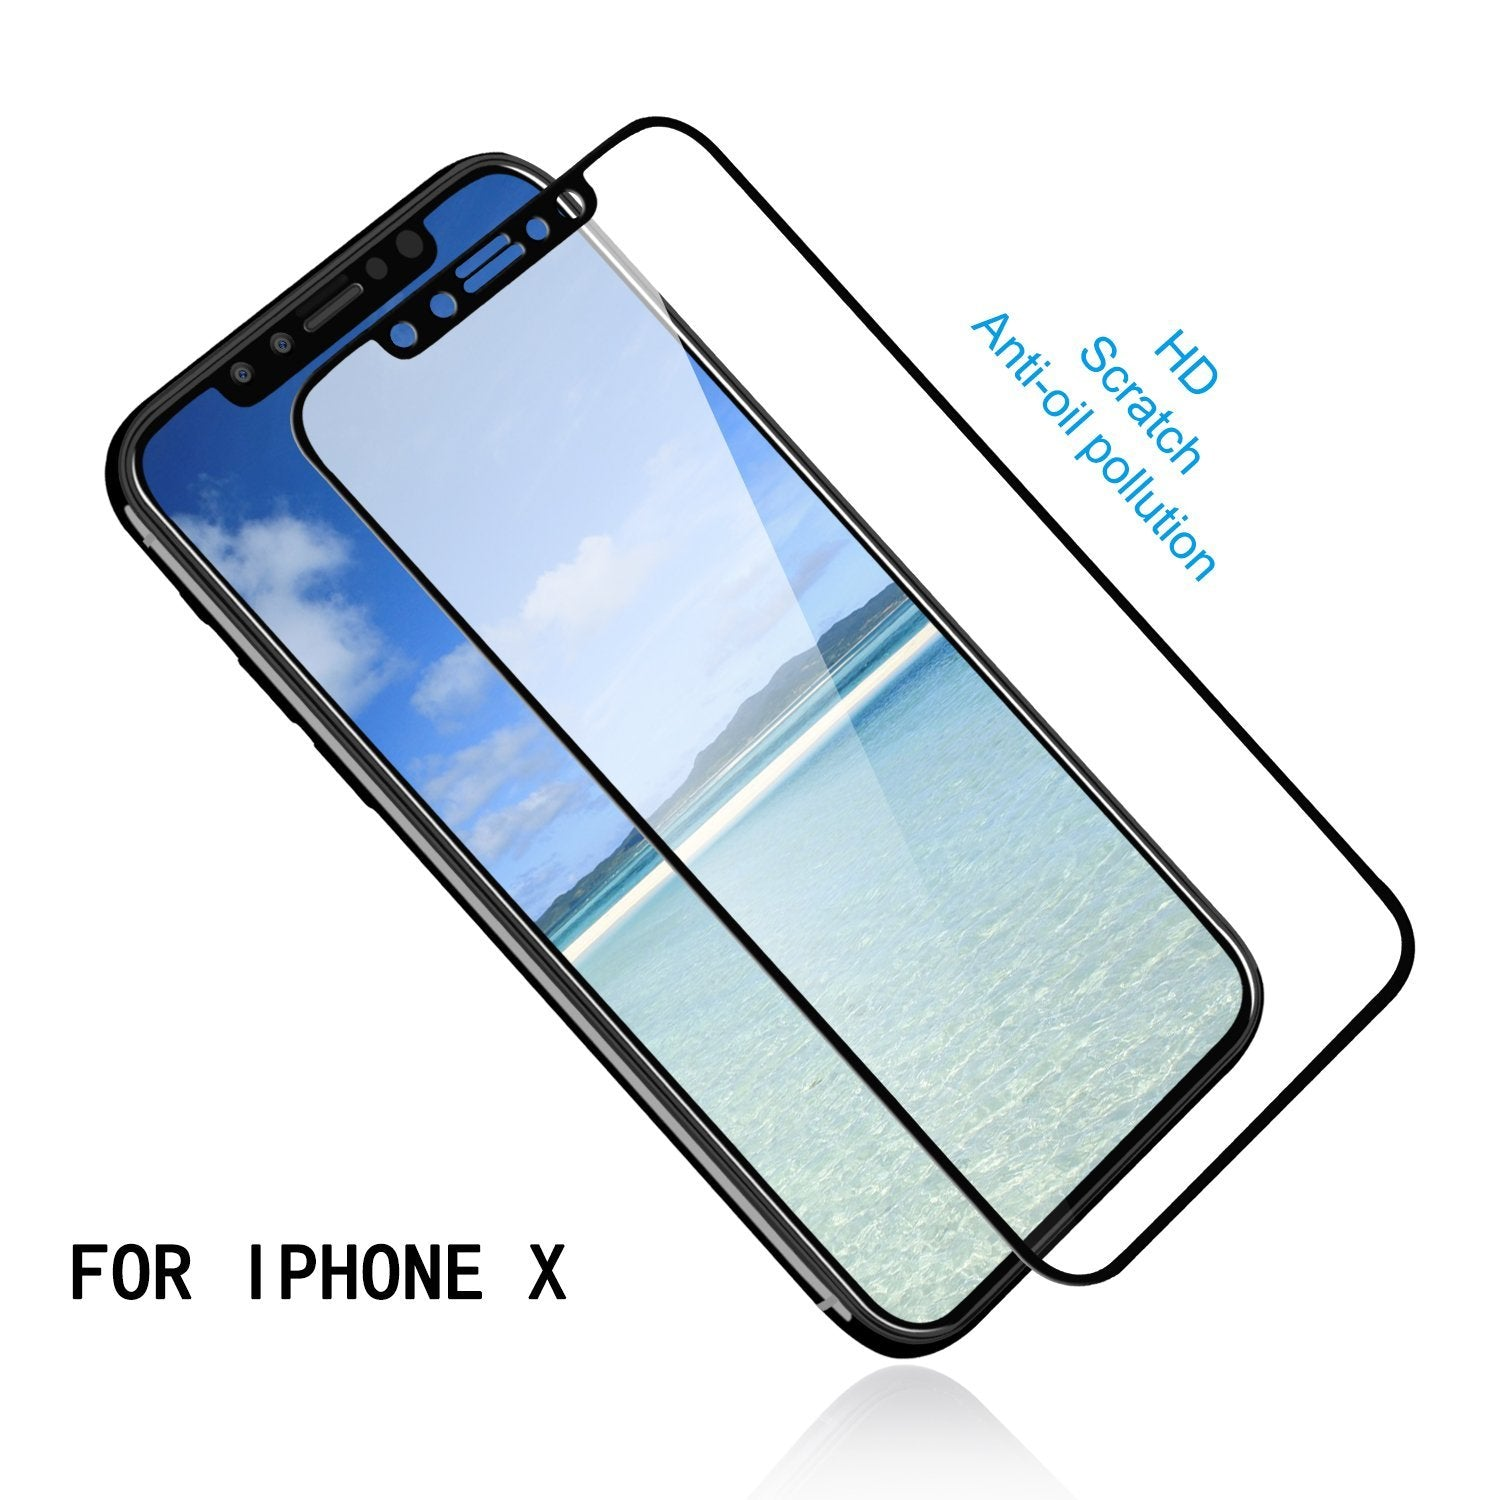 MAXSHILD 5D Full Coverage Glass Screen Protector For Apple iPhone X